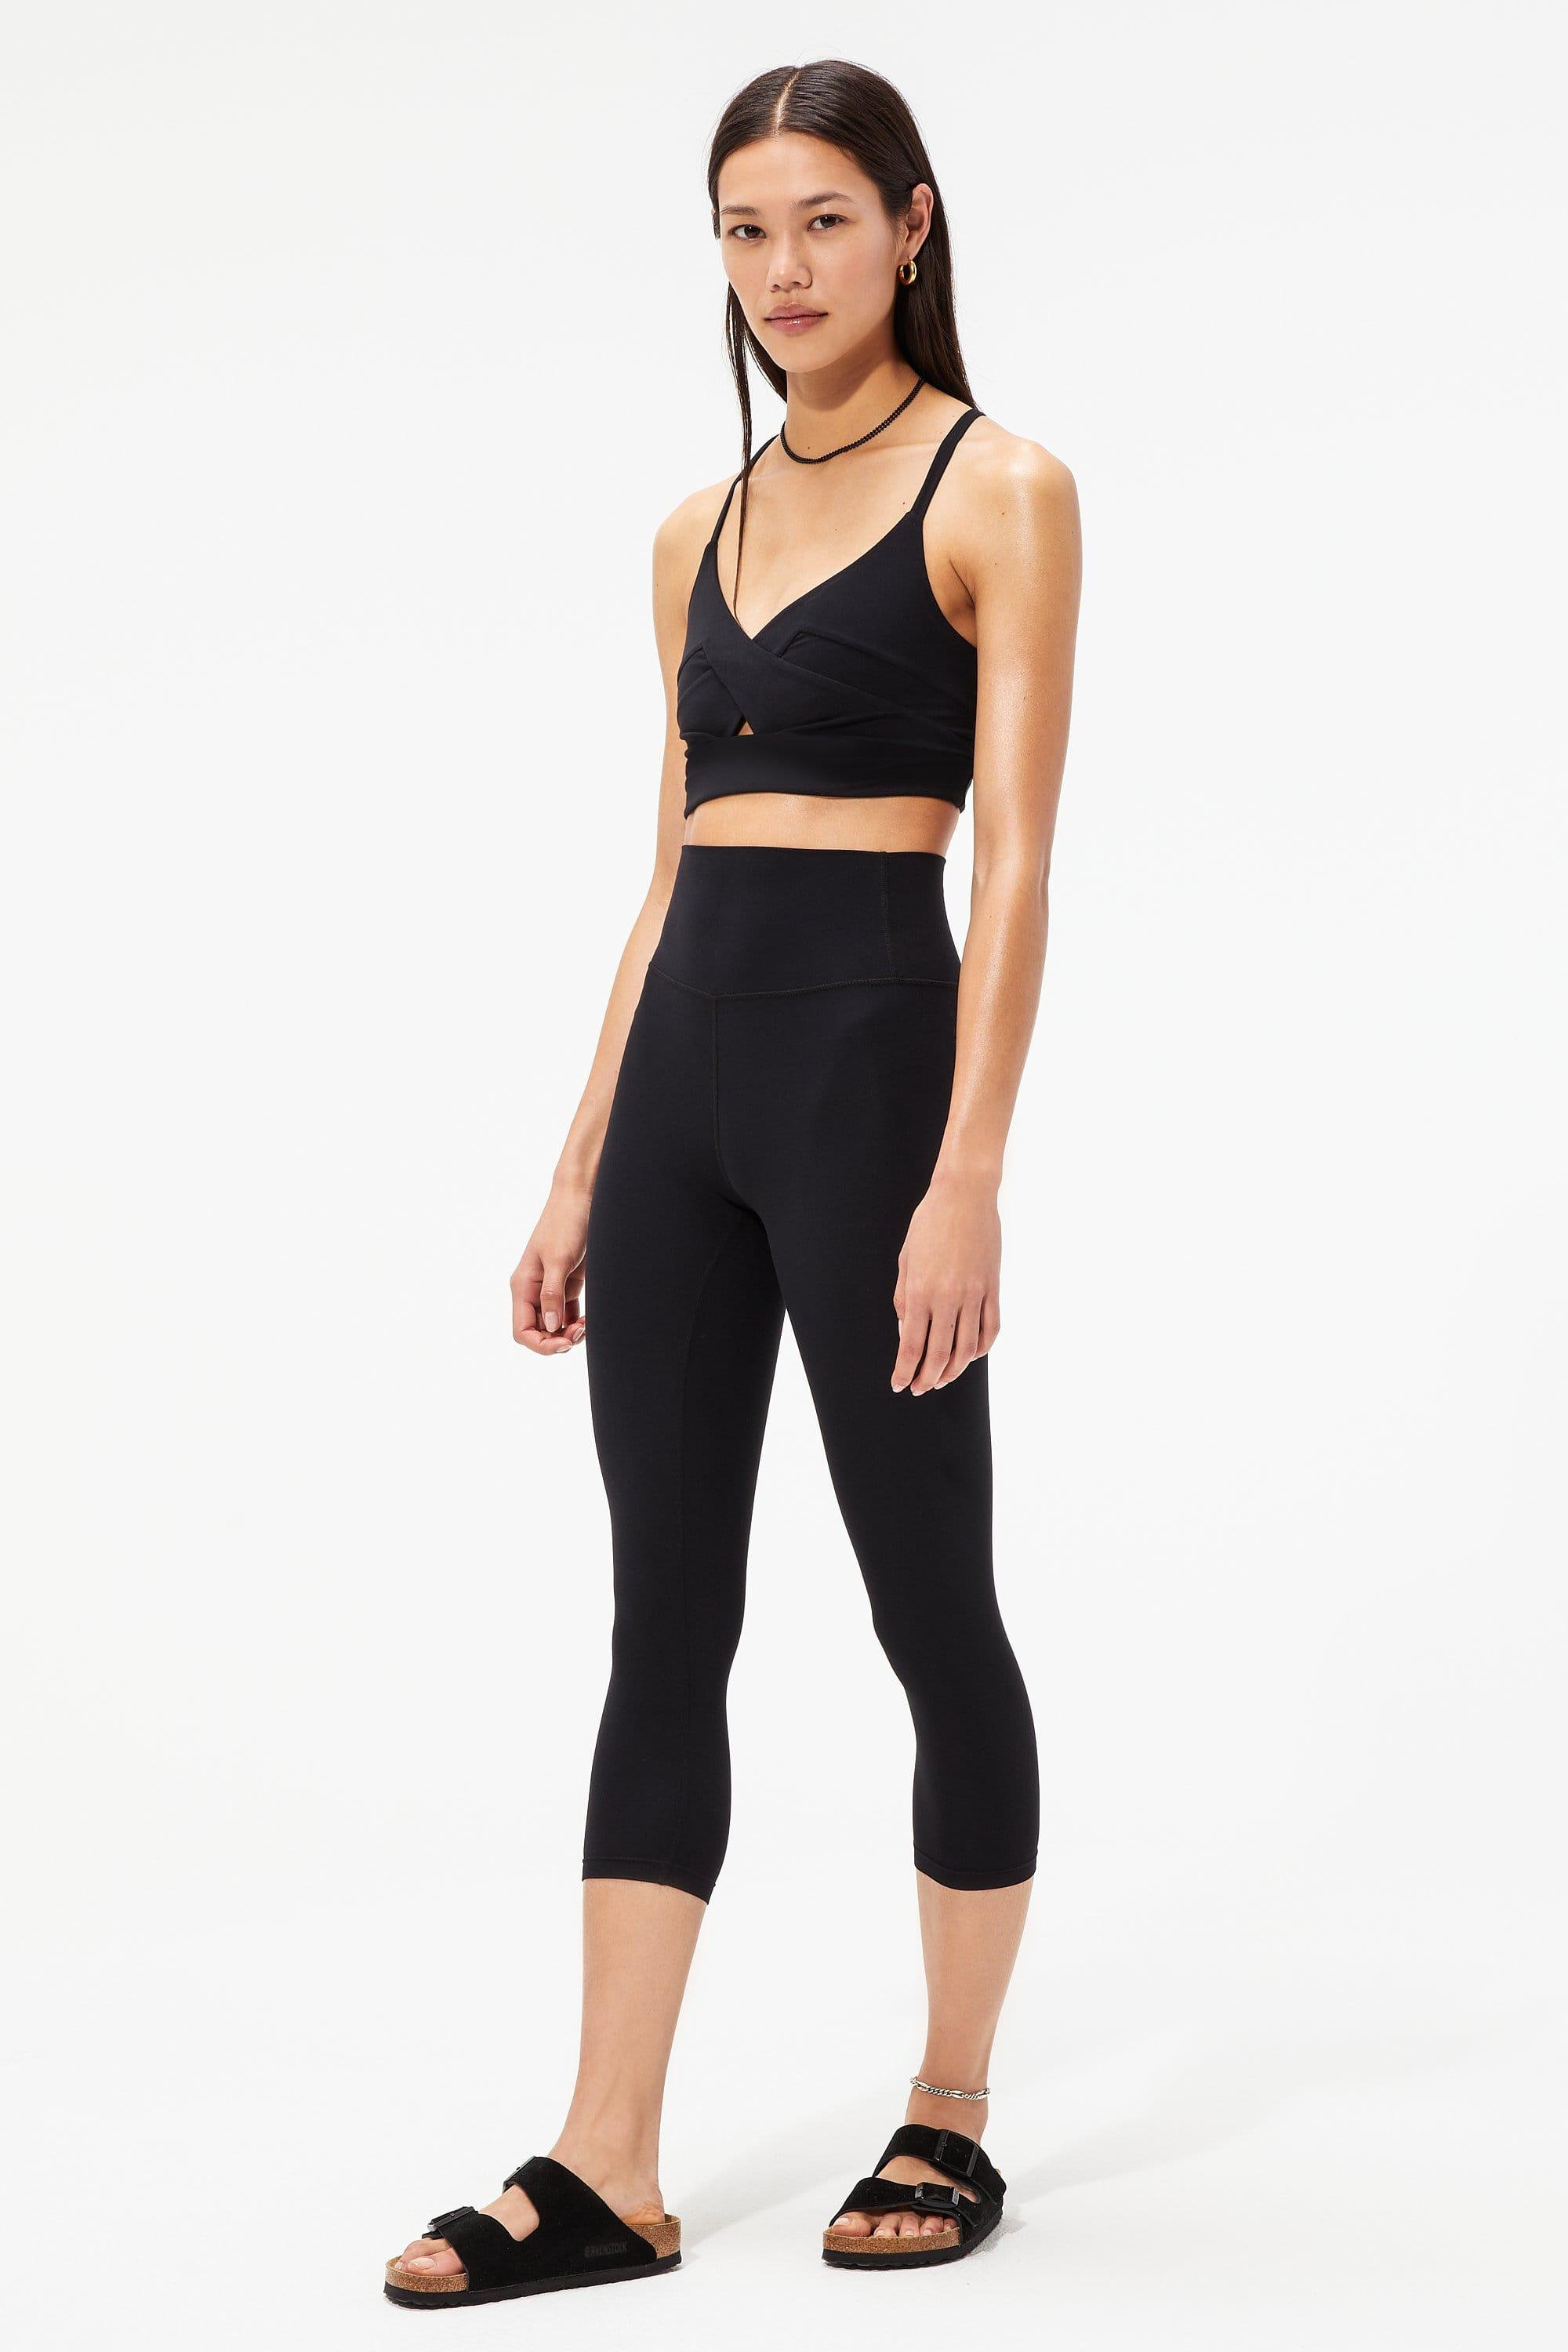 Sophia Airweight Bra And Airweight High Waist Cropped Legging